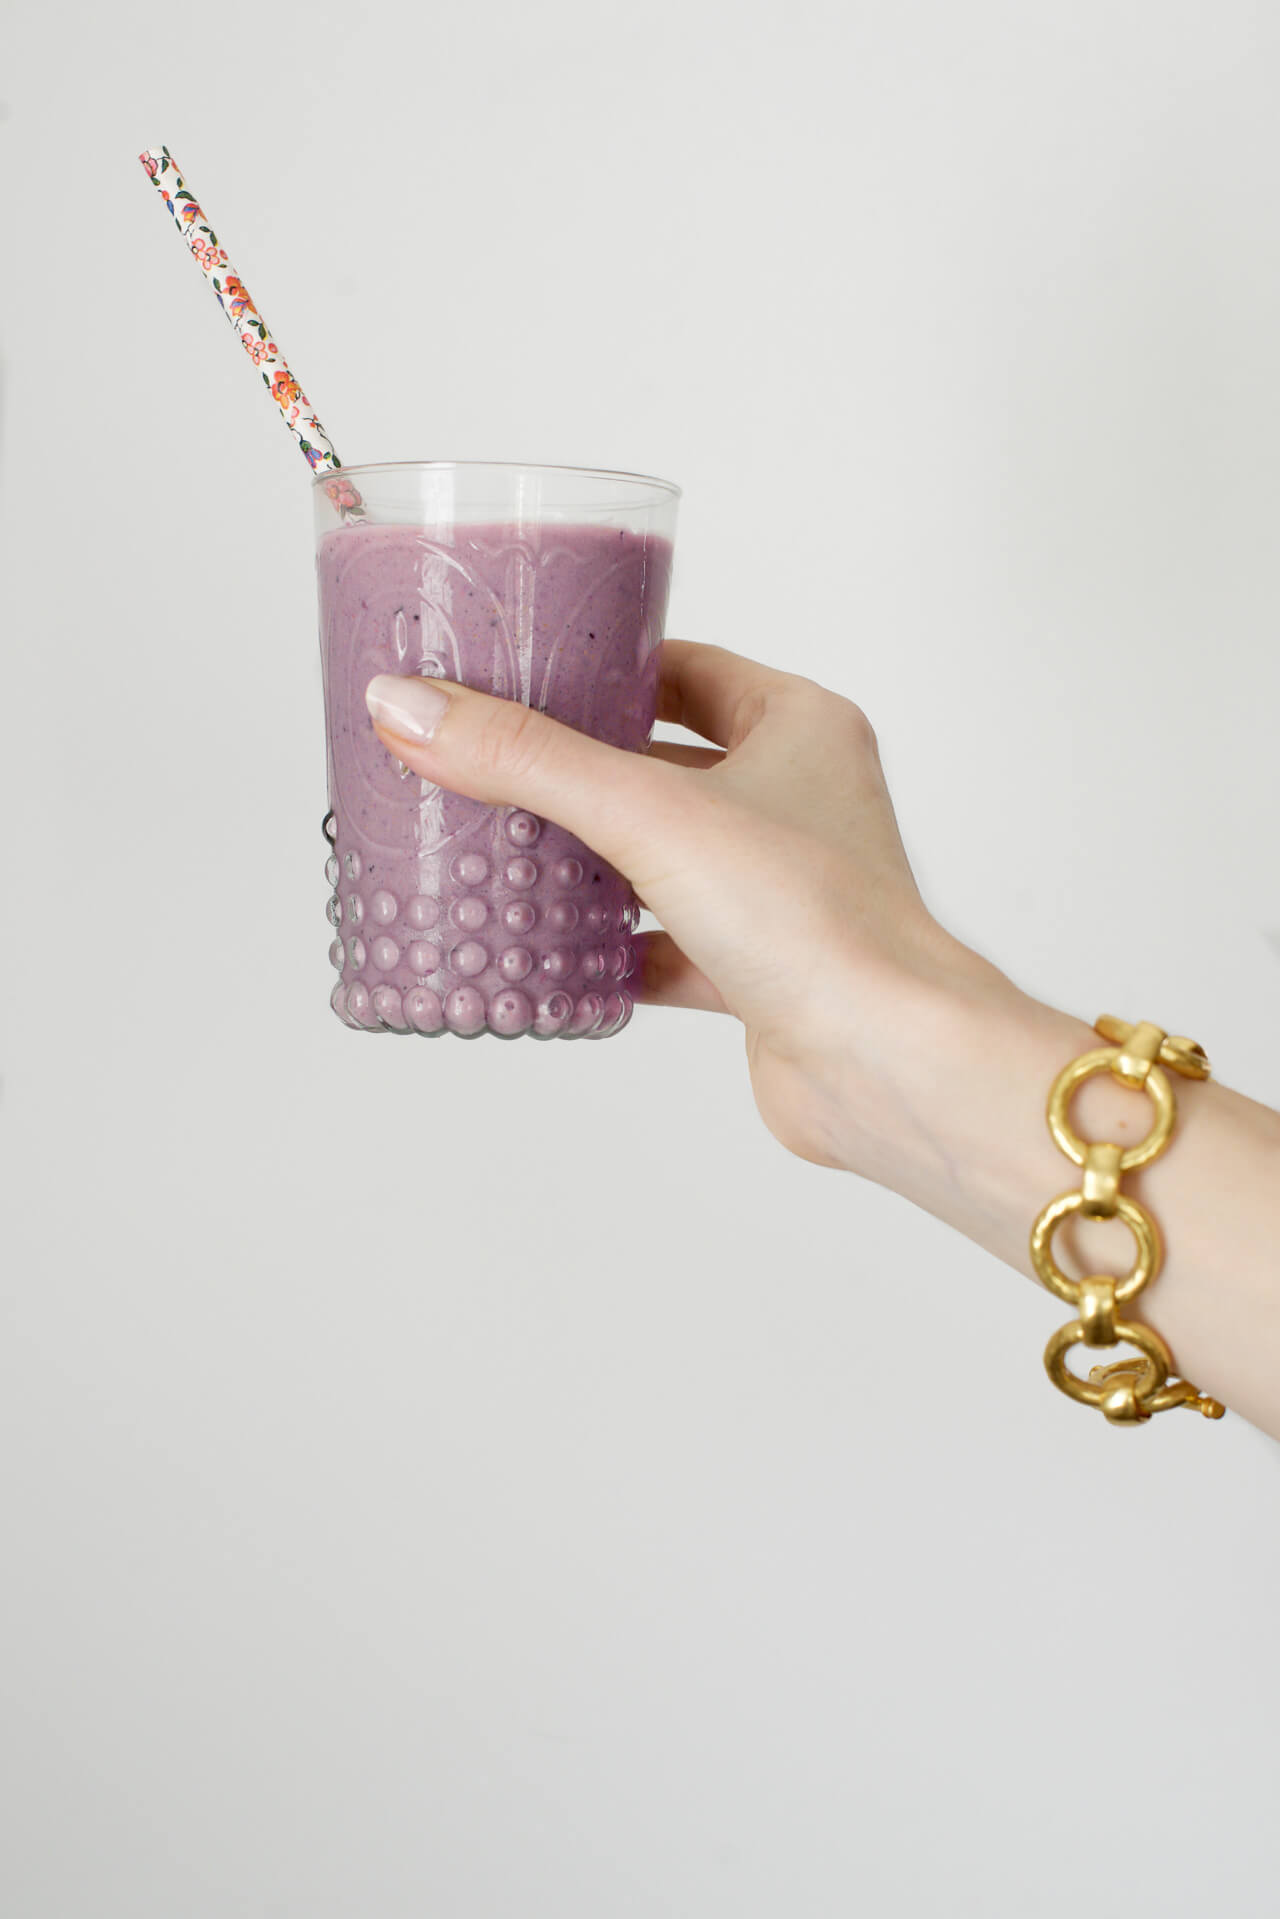 the best healthy smoothie recipe